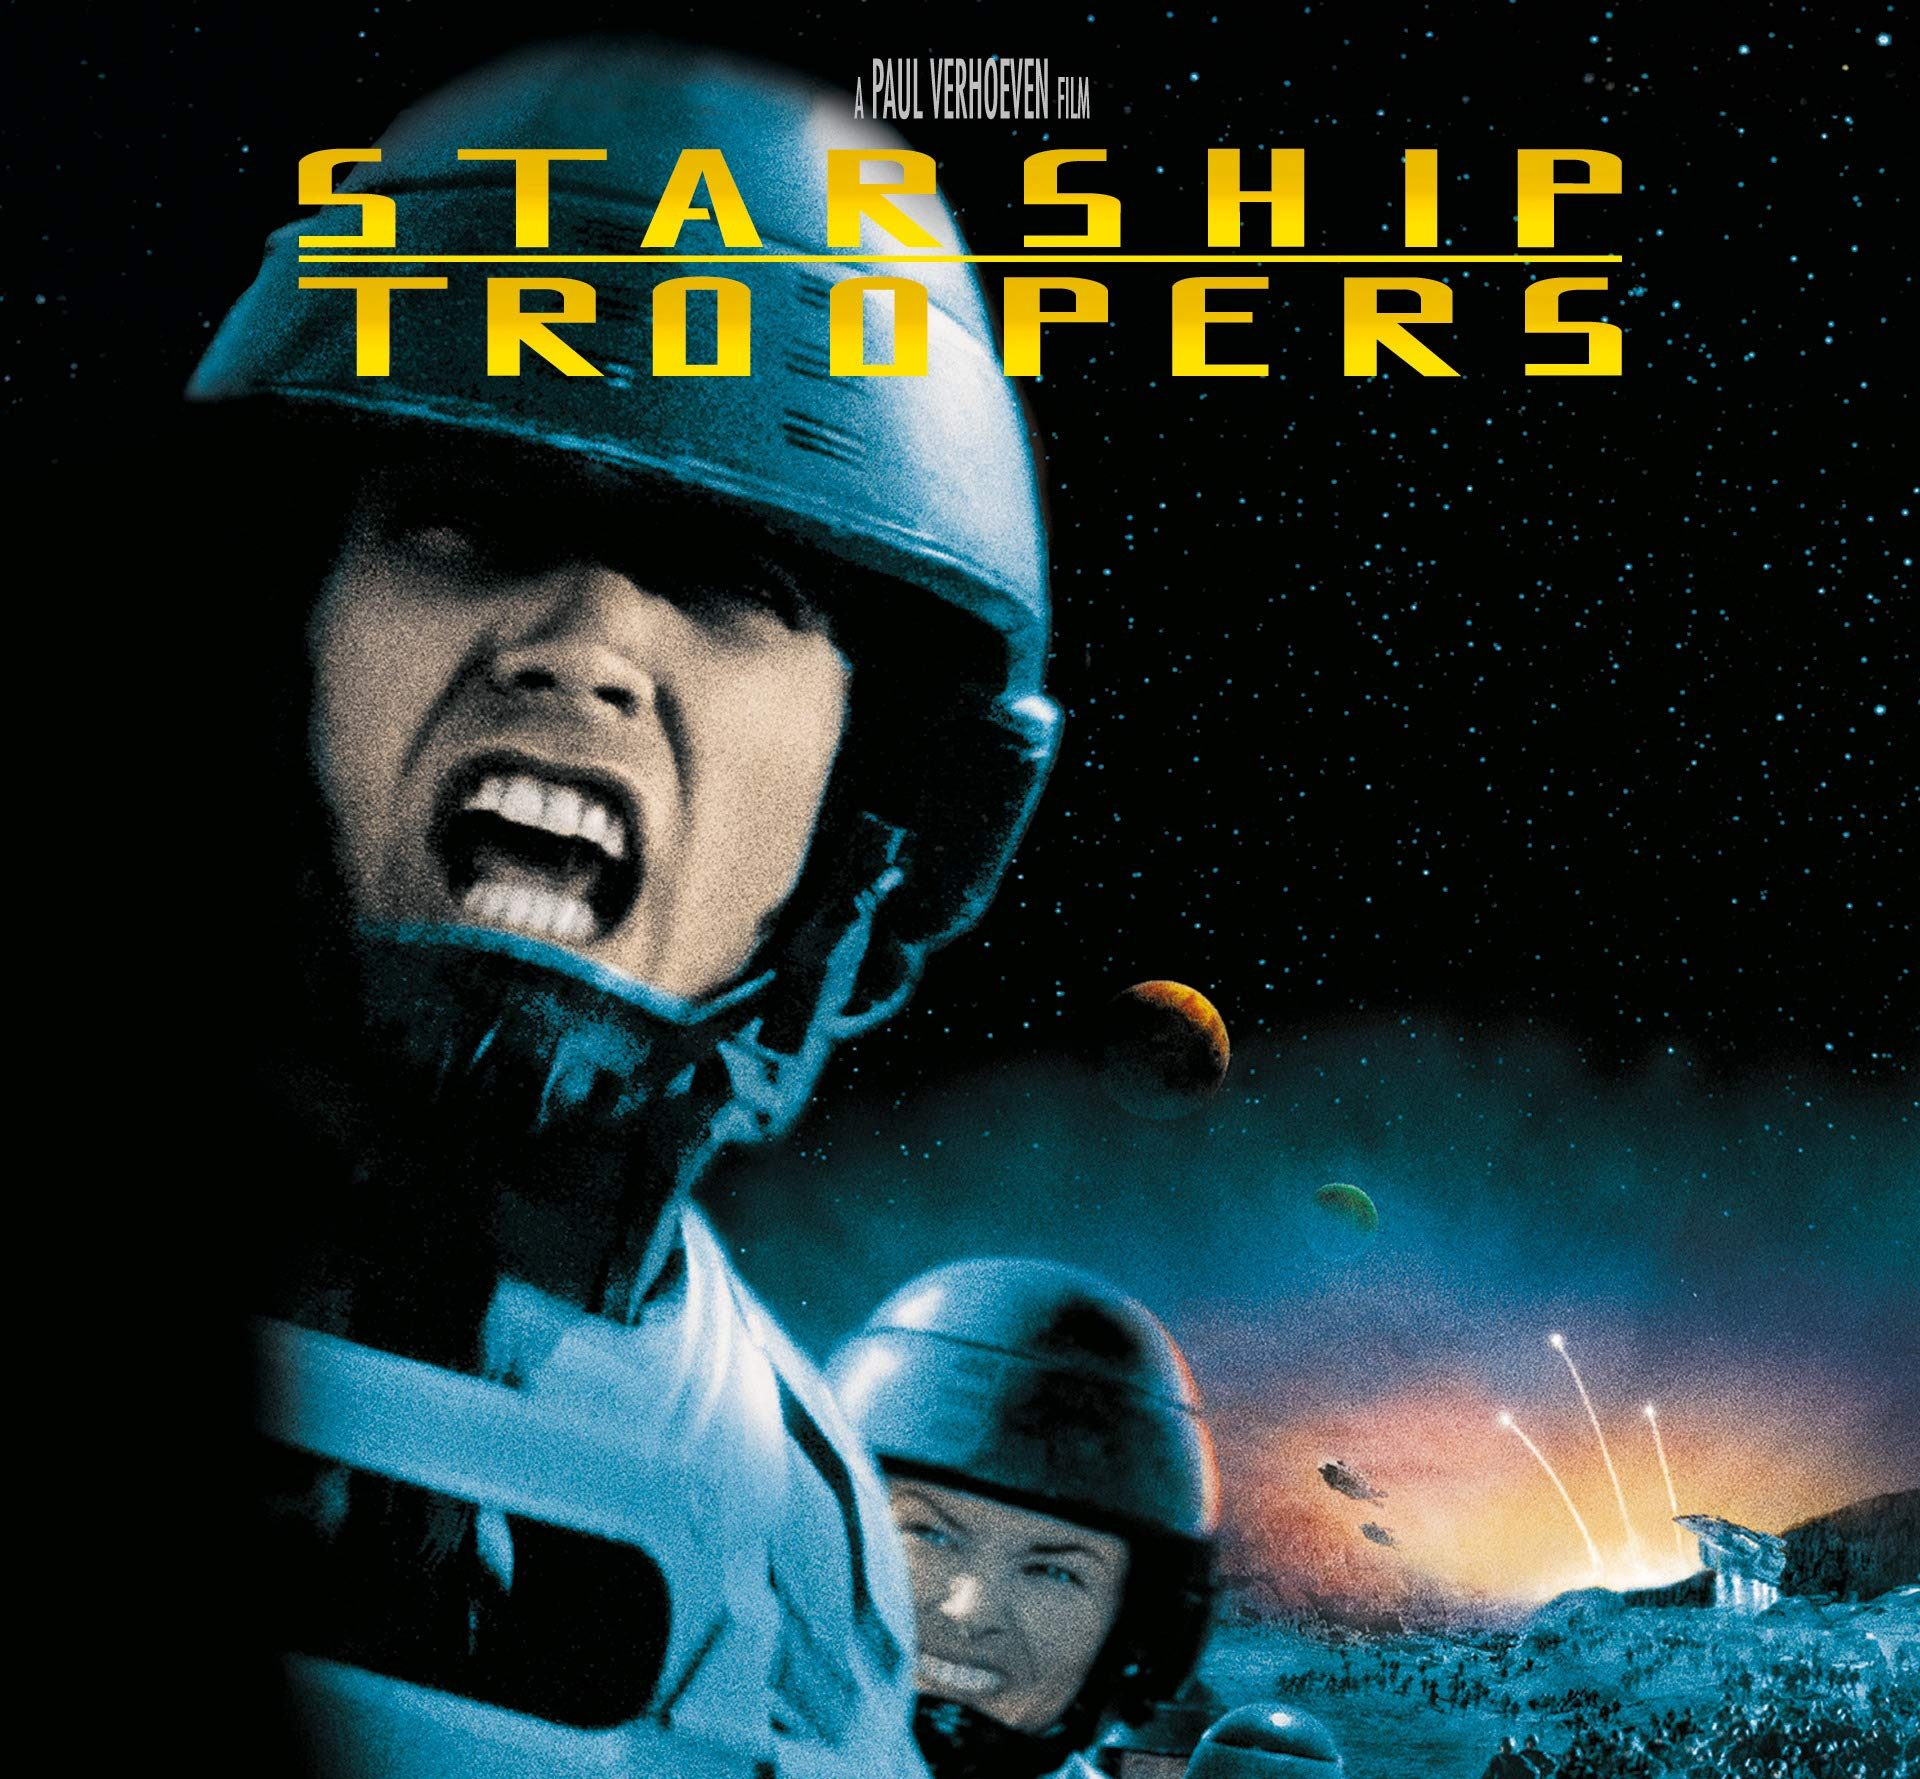 Starship Troopers 3 e1623323522419 Mark Wahlberg Almost Starred, And More You Never Knew About Starship Troopers